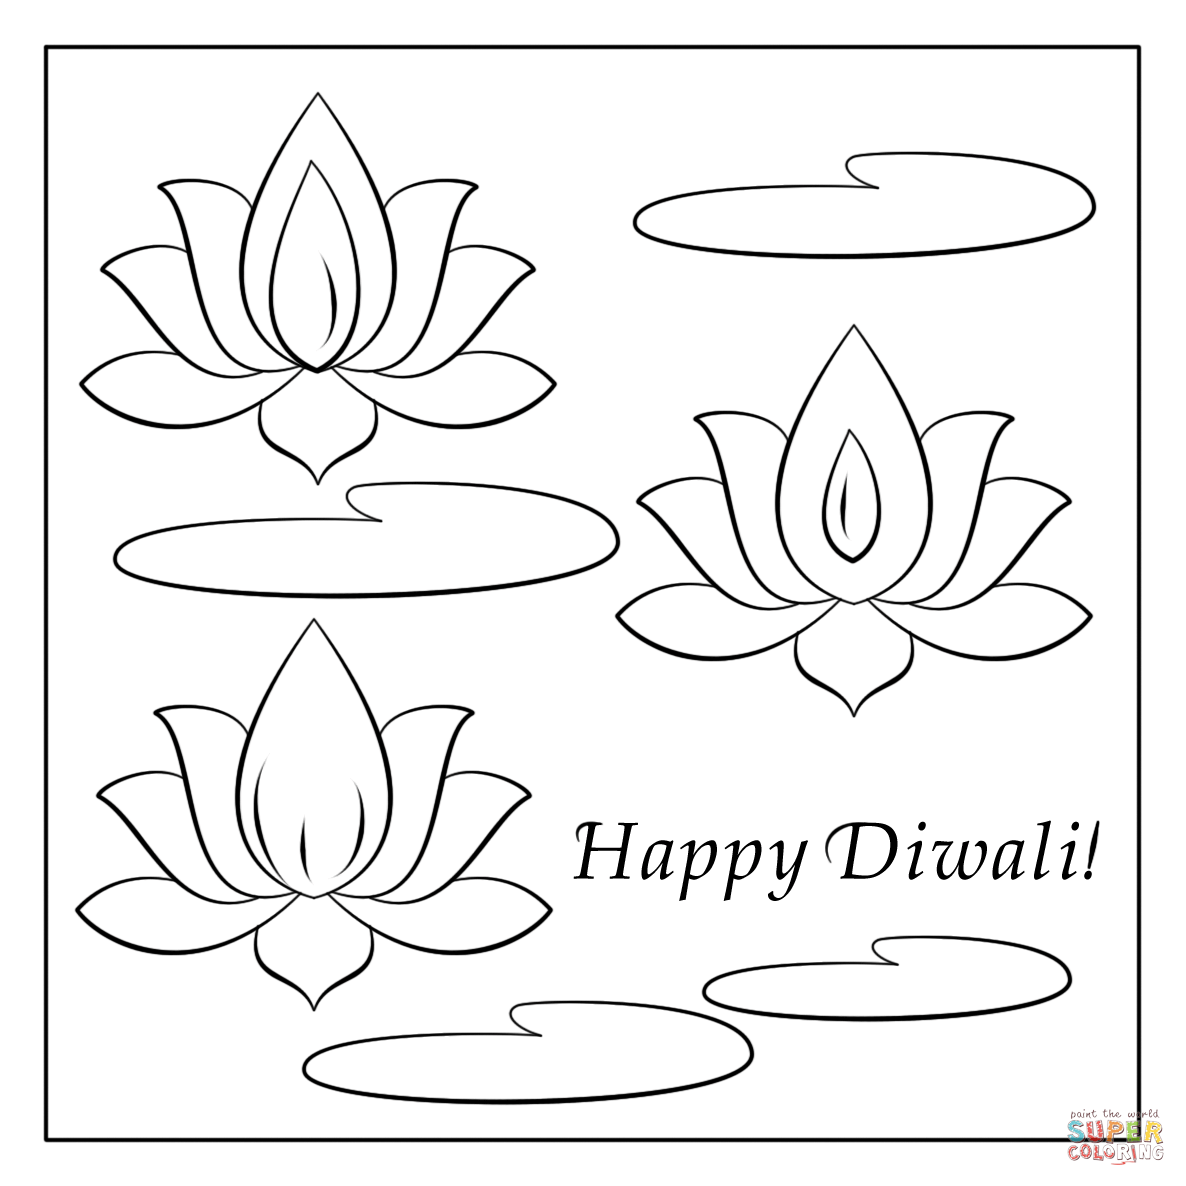 pictures of diwali for colouring kids celebrate diwali coloring page netart colouring of diwali pictures for